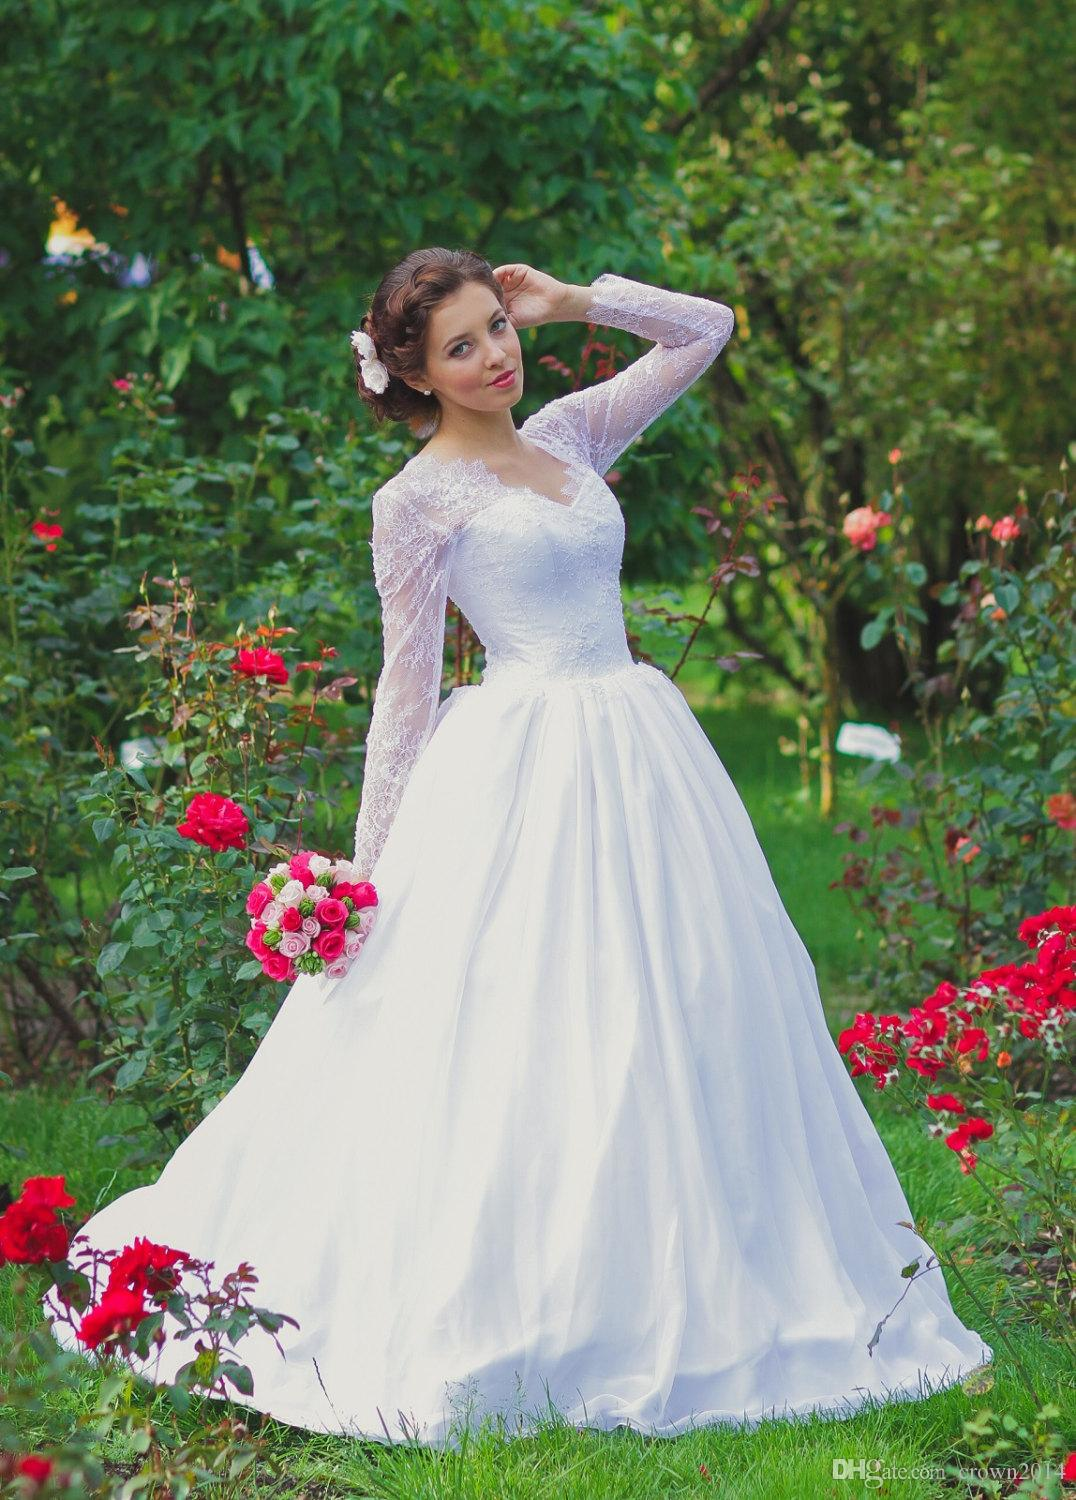 Vintage Ball Gowns White Wedding Dresses 2019 with Lace Corset Beaded Illusion Long Lace Sleeve Lace Up Back V Neck Tulle Skirt Bridal Gown